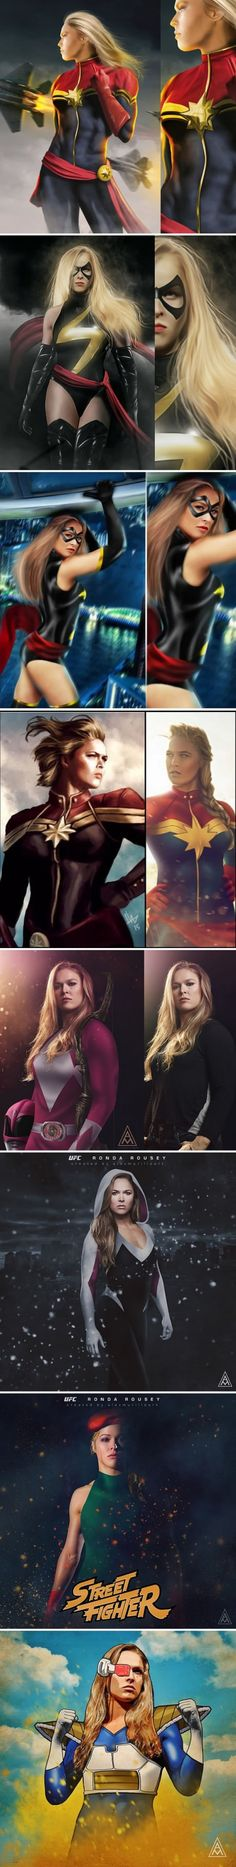 Artists Reimagine Ronda Rousey As Captain Marvel And More Characters (By Alexmurilloart, Bosslogix & Salman.artworks) Artists Reimagine Ronda Rousey As Captain Marvel And More Characters (By Alexmurilloart, Bosslogix & Salman. Marvel Dc, Marvel Comics Art, Marvel Girls, Comics Girls, Captain Marvel Carol Danvers, Miss Hulk, Cosplay, Ronda Rousey, Comic Character